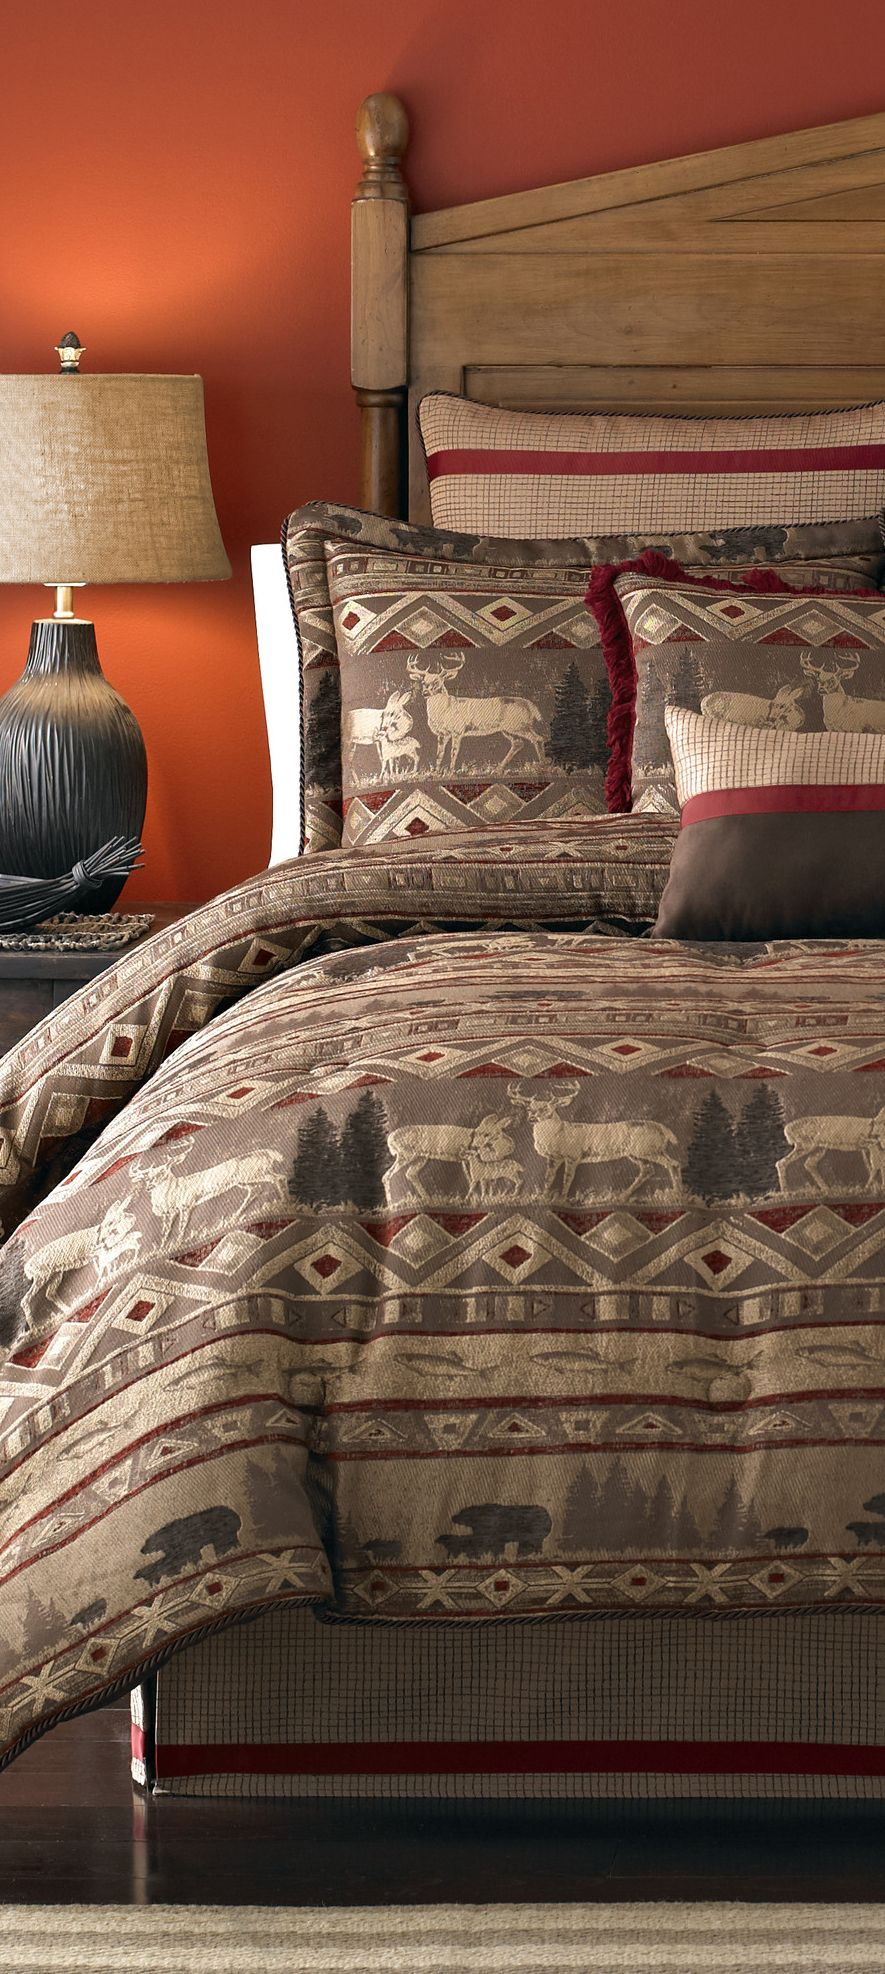 Rustic Bedding In 2019 Cabin Fever Rustic Bedding Home Decor